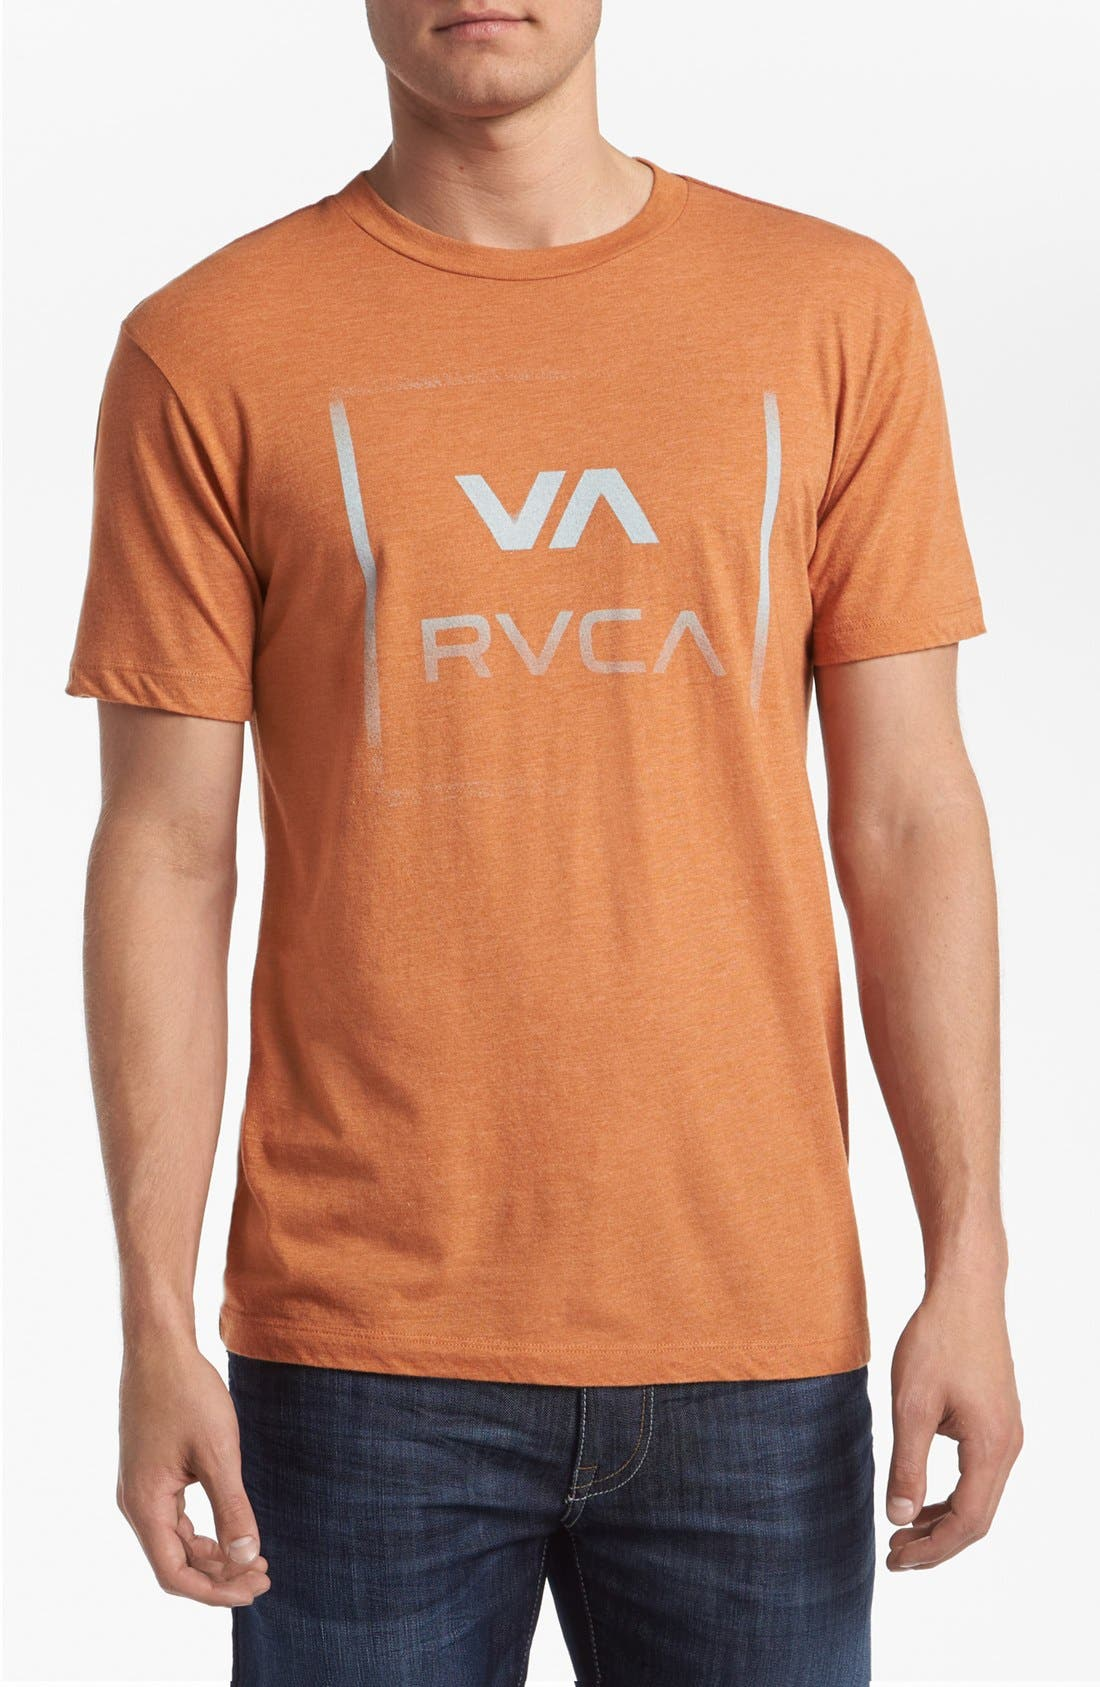 Main Image - RVCA 'VA All The Way' T-Shirt